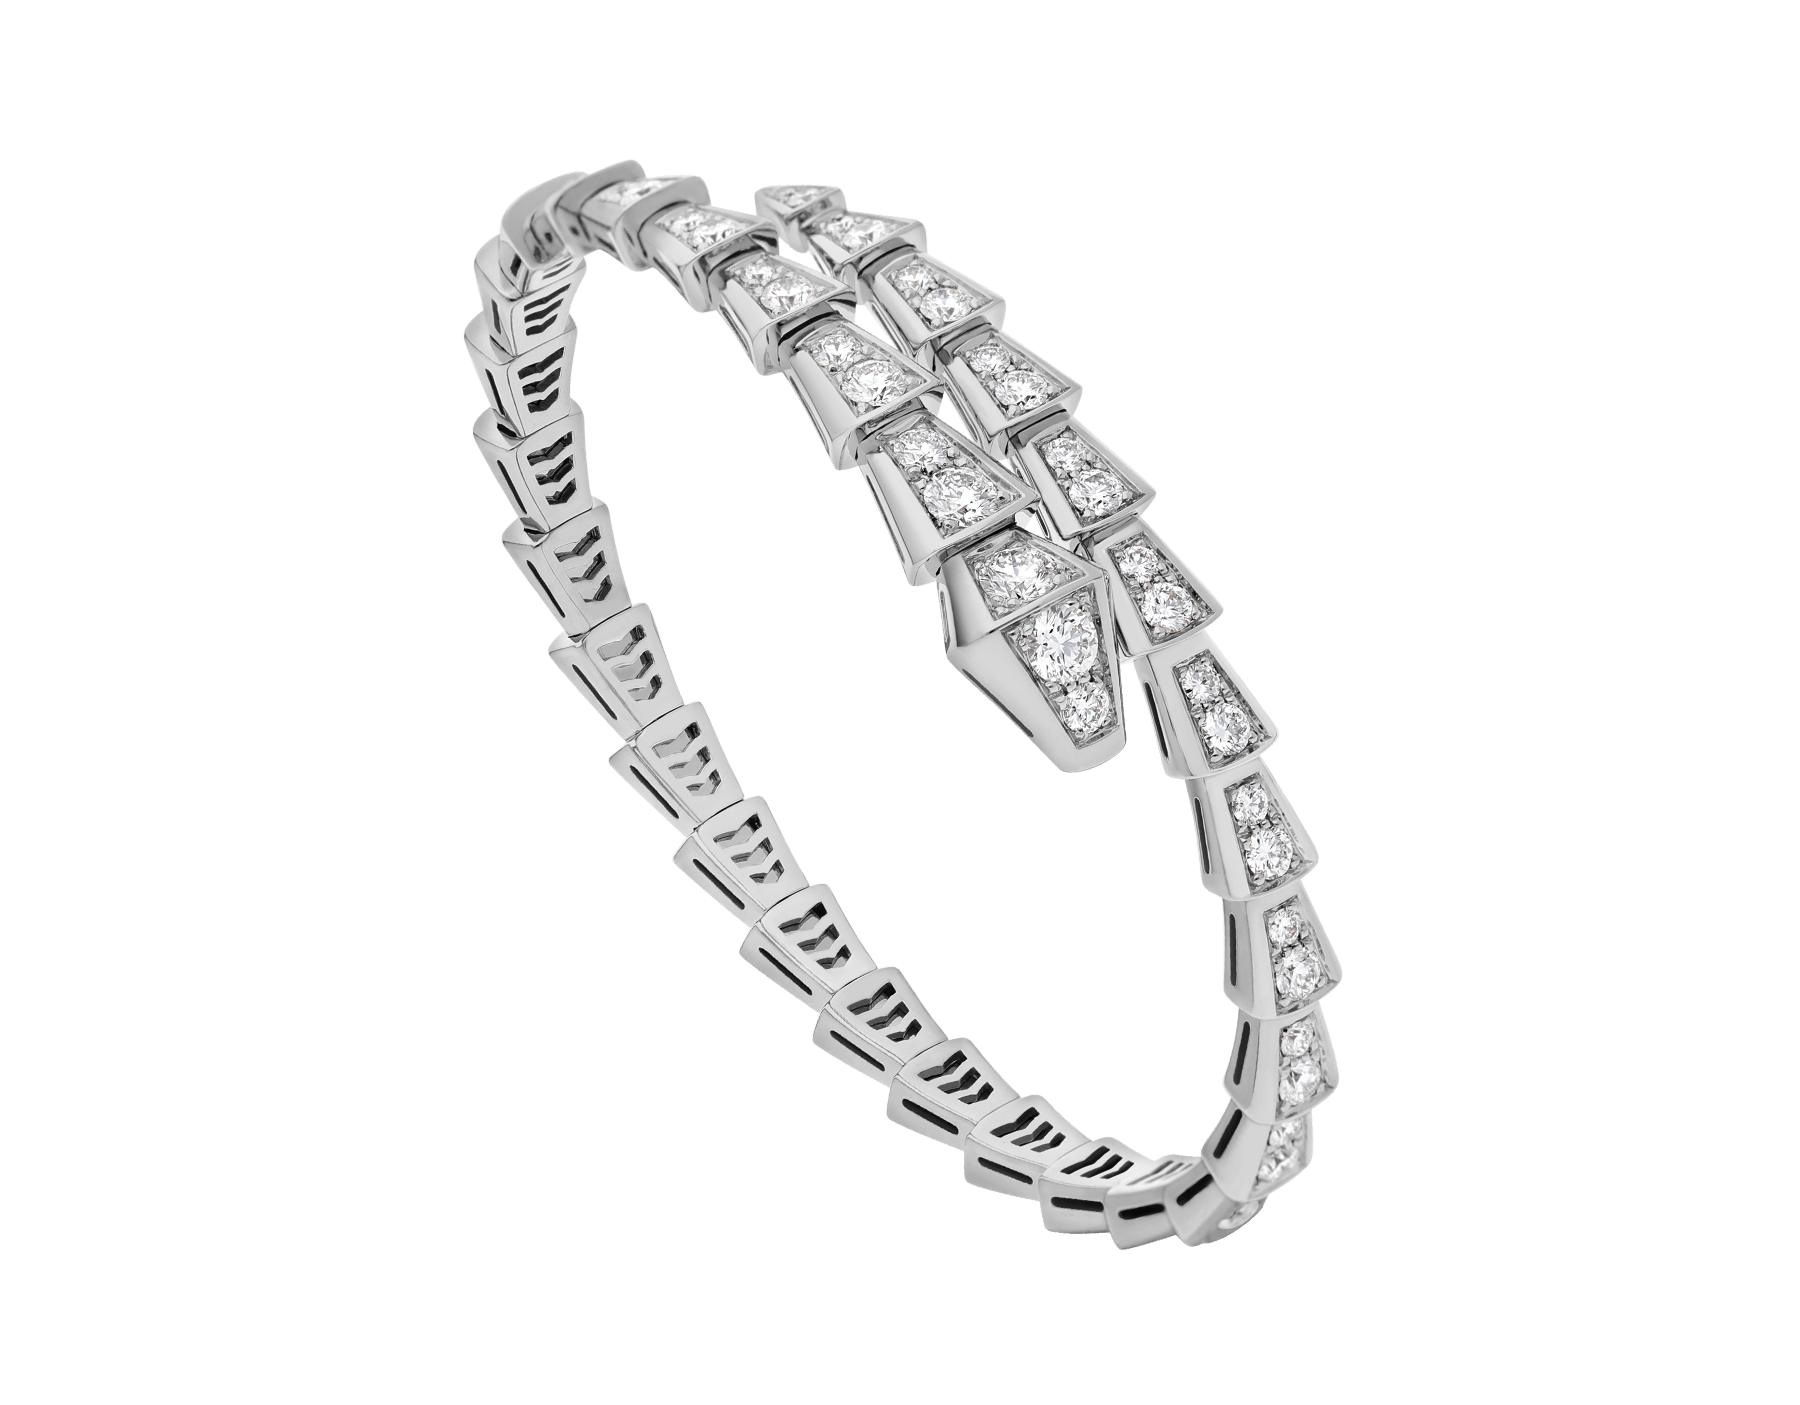 Serpenti one-coil slim bracelet in 18 kt white gold, set with full pavé diamonds. BR857492 image 1